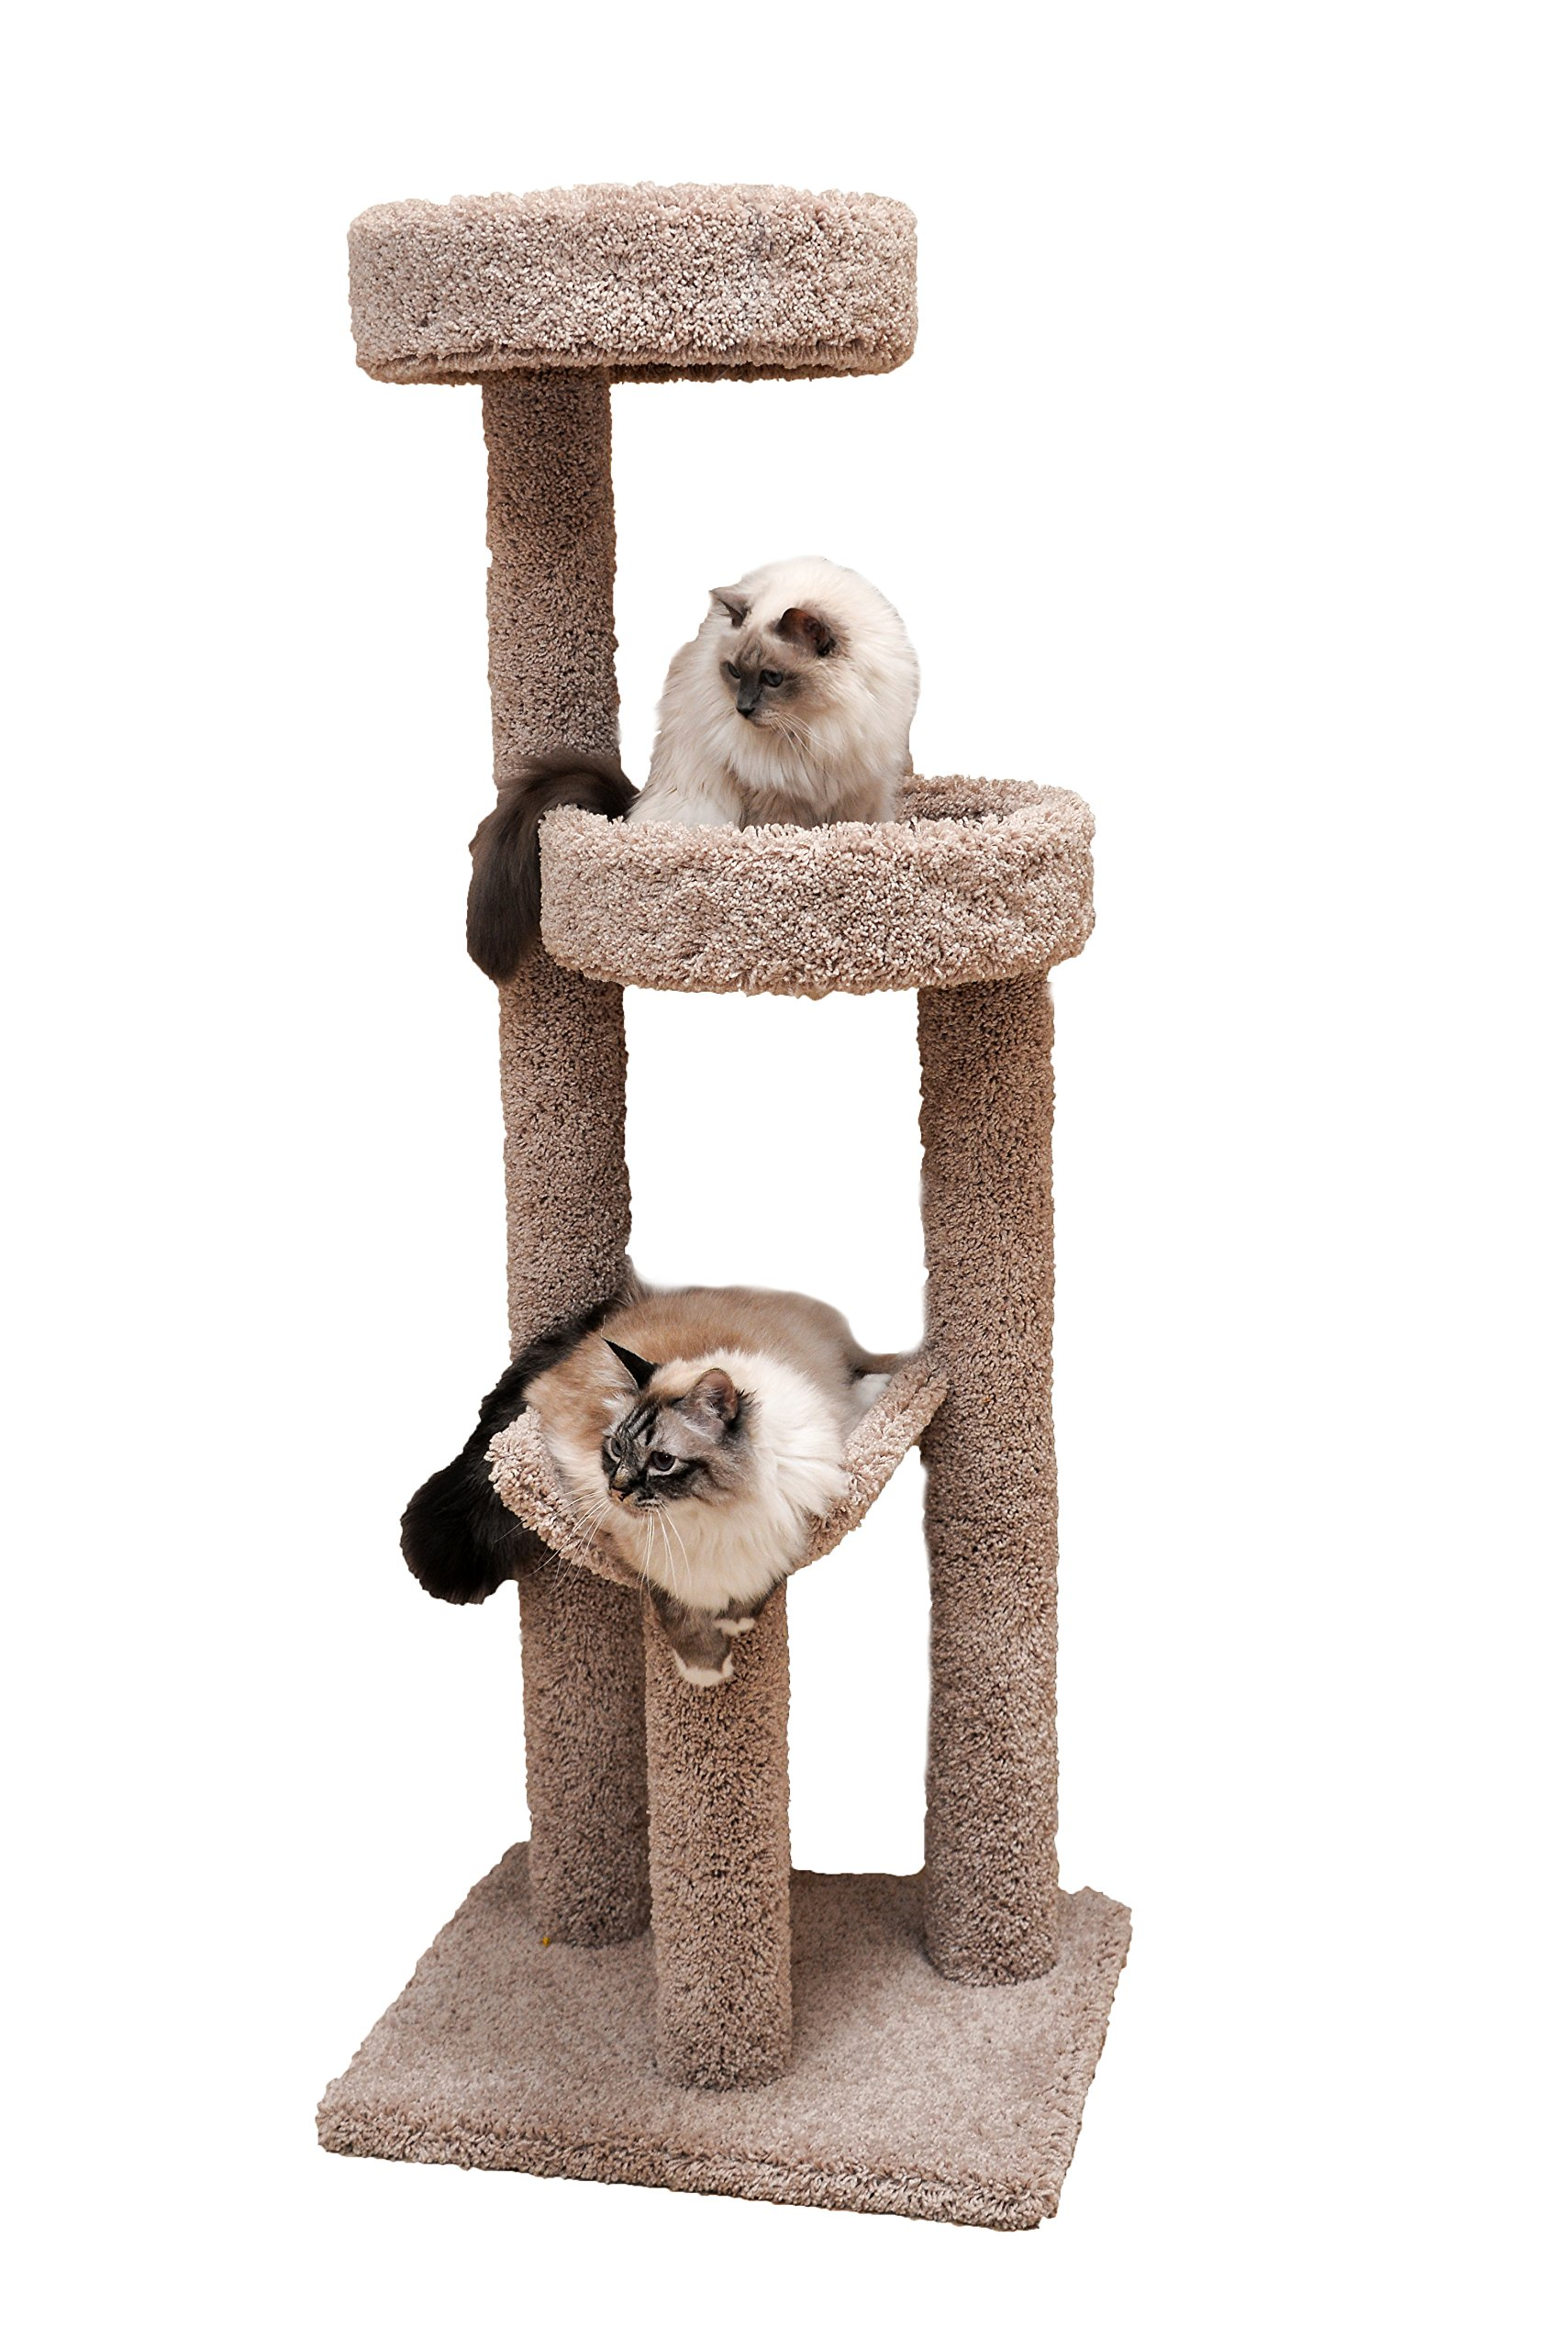 Miller's Cats 1003 Cozy Climber Cat Furniture with 3 Plush Carpeted Platforms, Beige, 60''